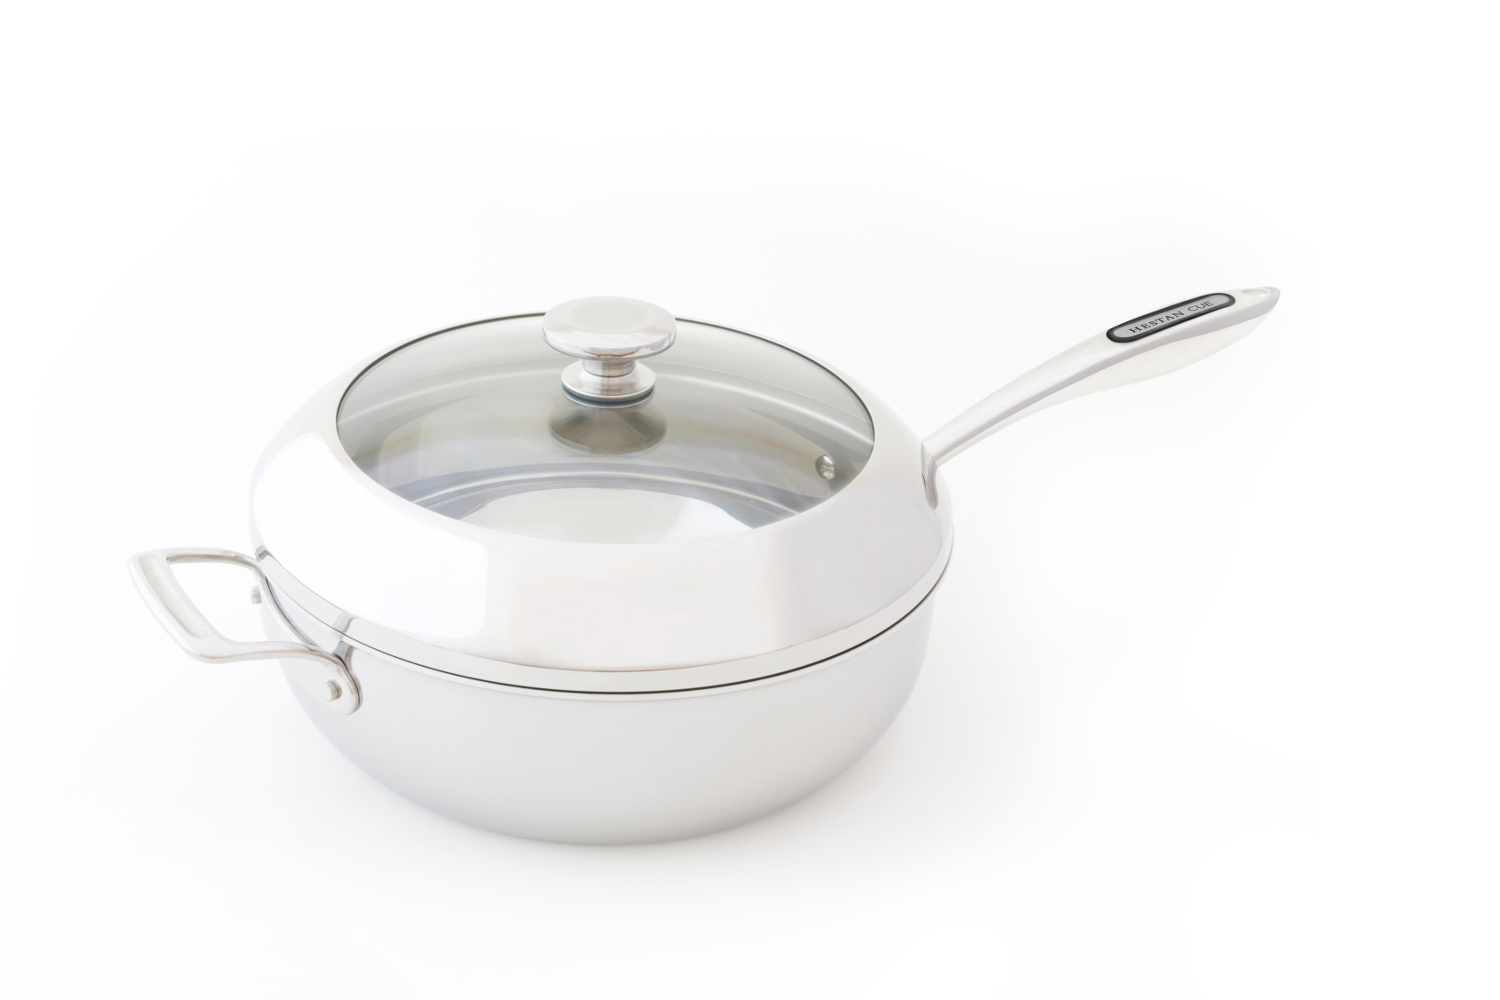 Hestan Cue 5.5 qt. Covered Chef's Pot w/Bluetooth